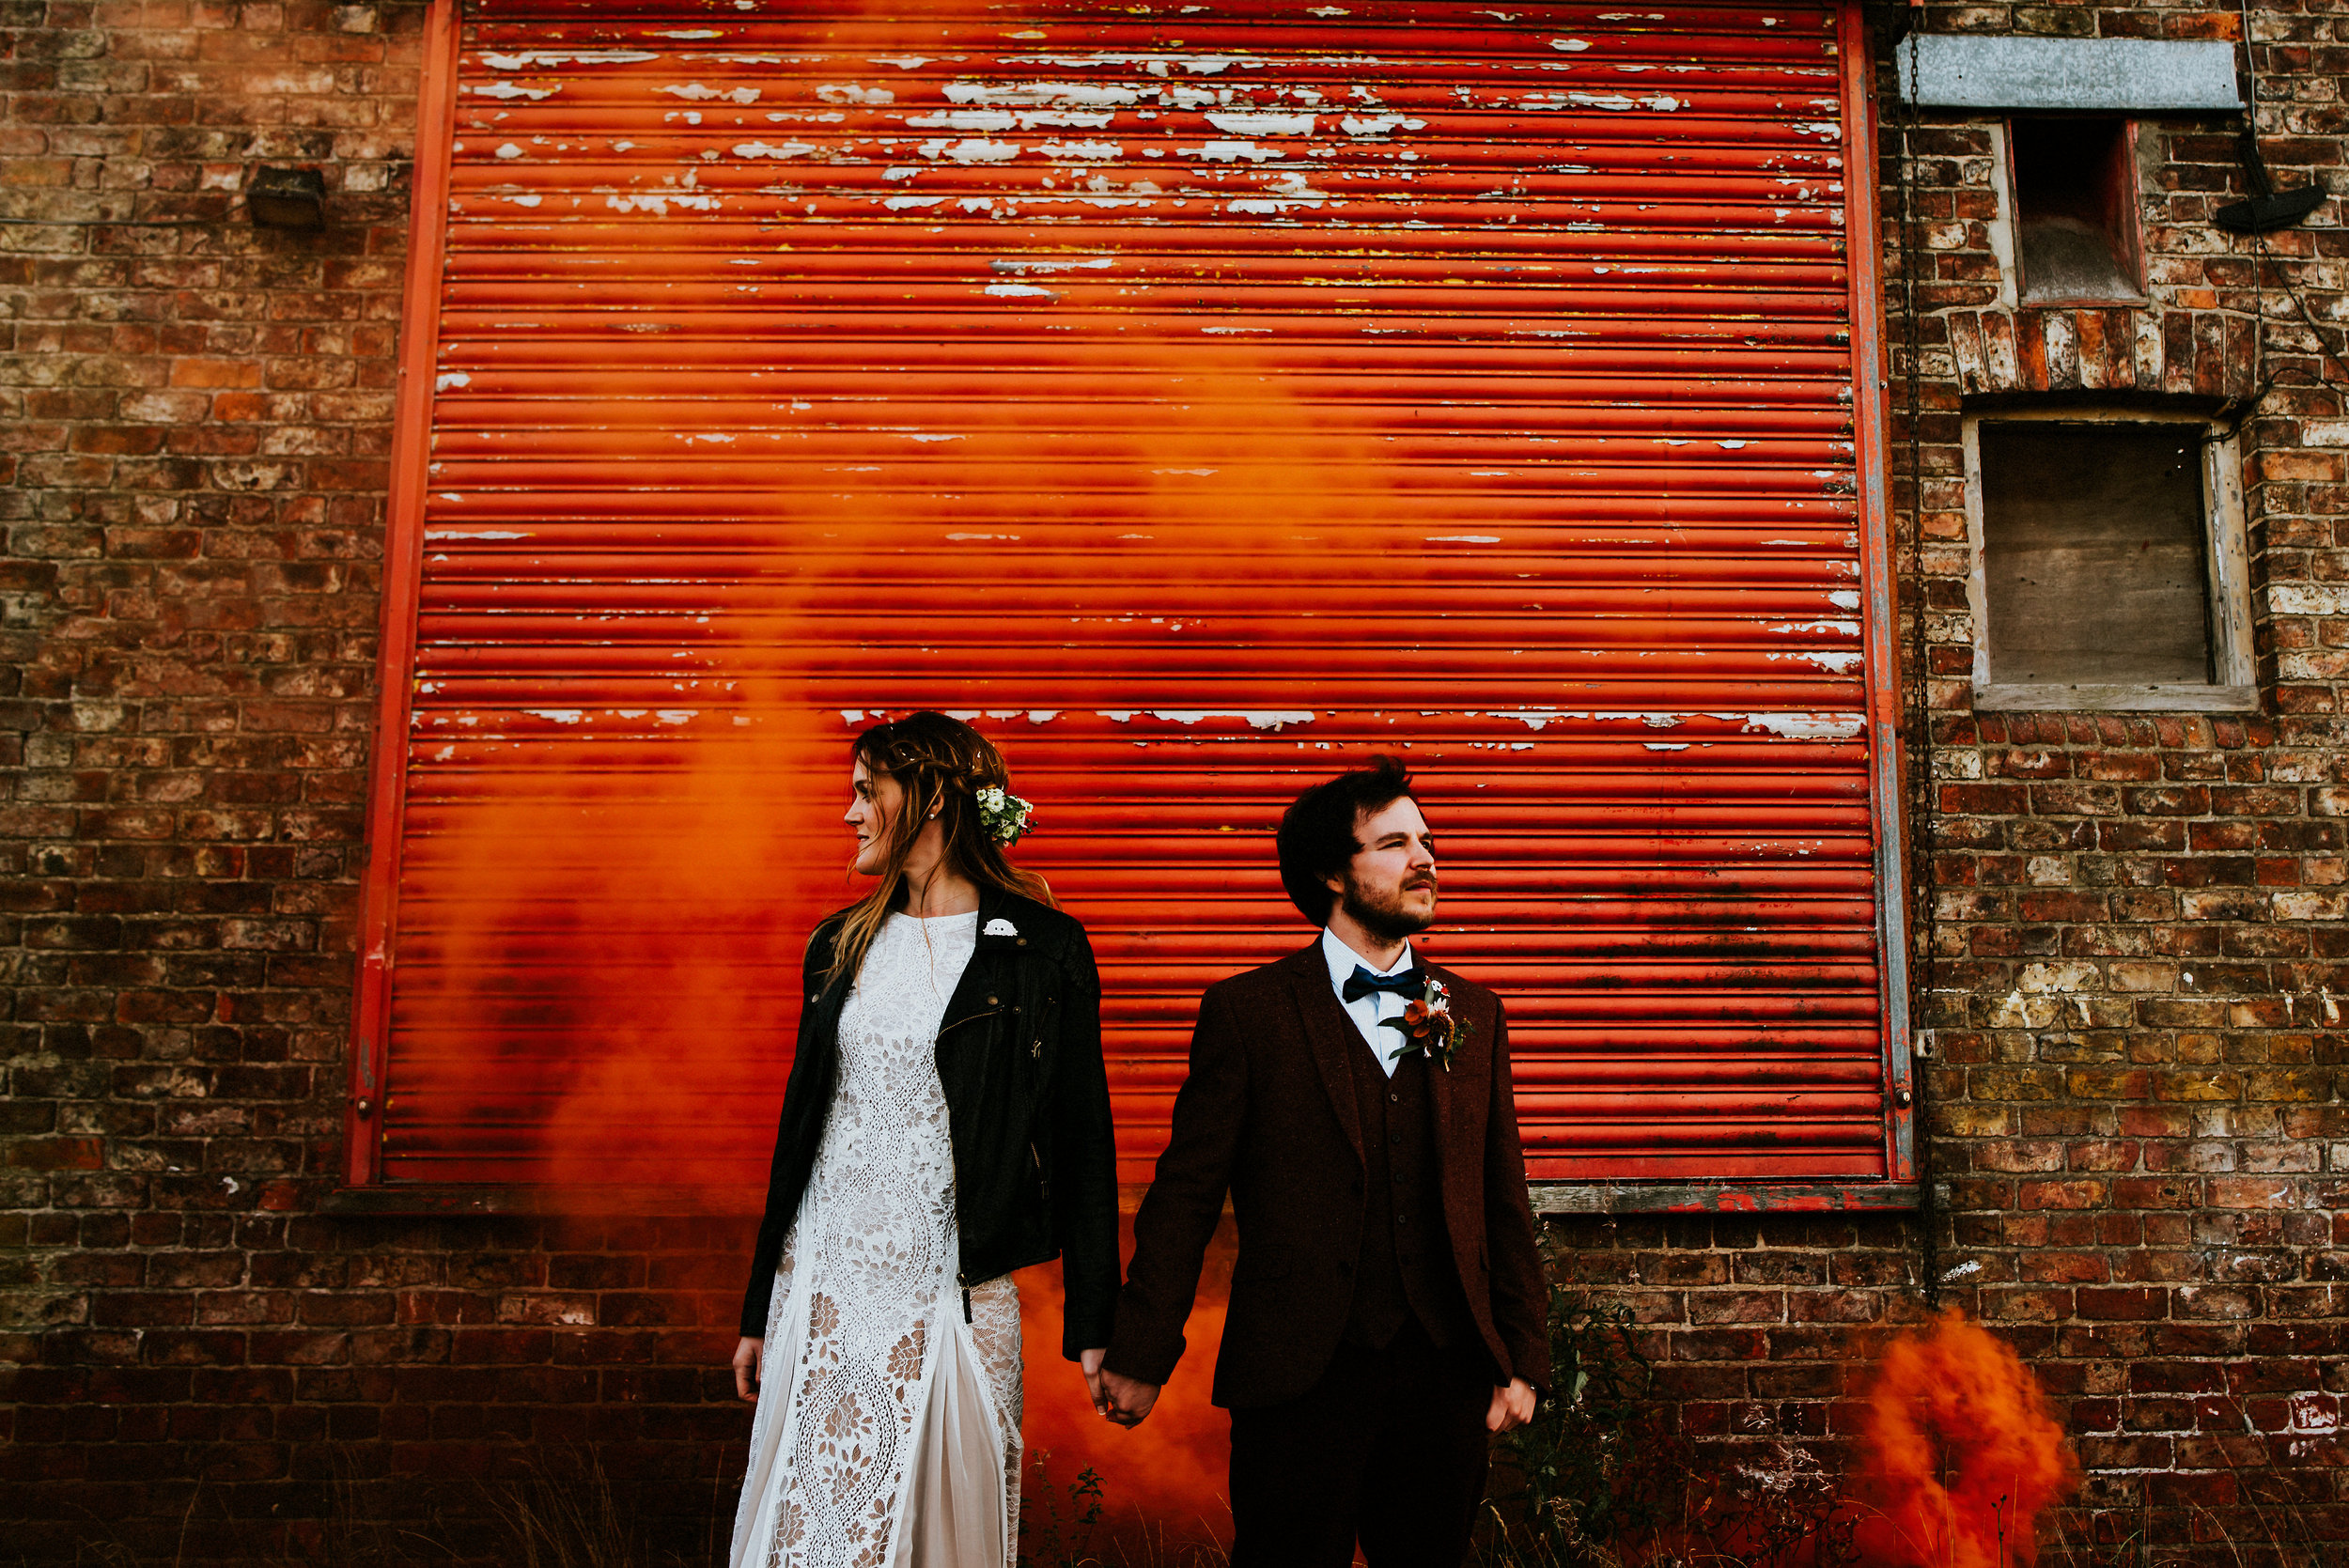 Leather jackets, Smoke Bombs, Colourful Contrast, From the York Walls to the Spotted Ox in Tockwith. Stef & Lewis' wedding was all about mixing contemporary creativity with classic elements